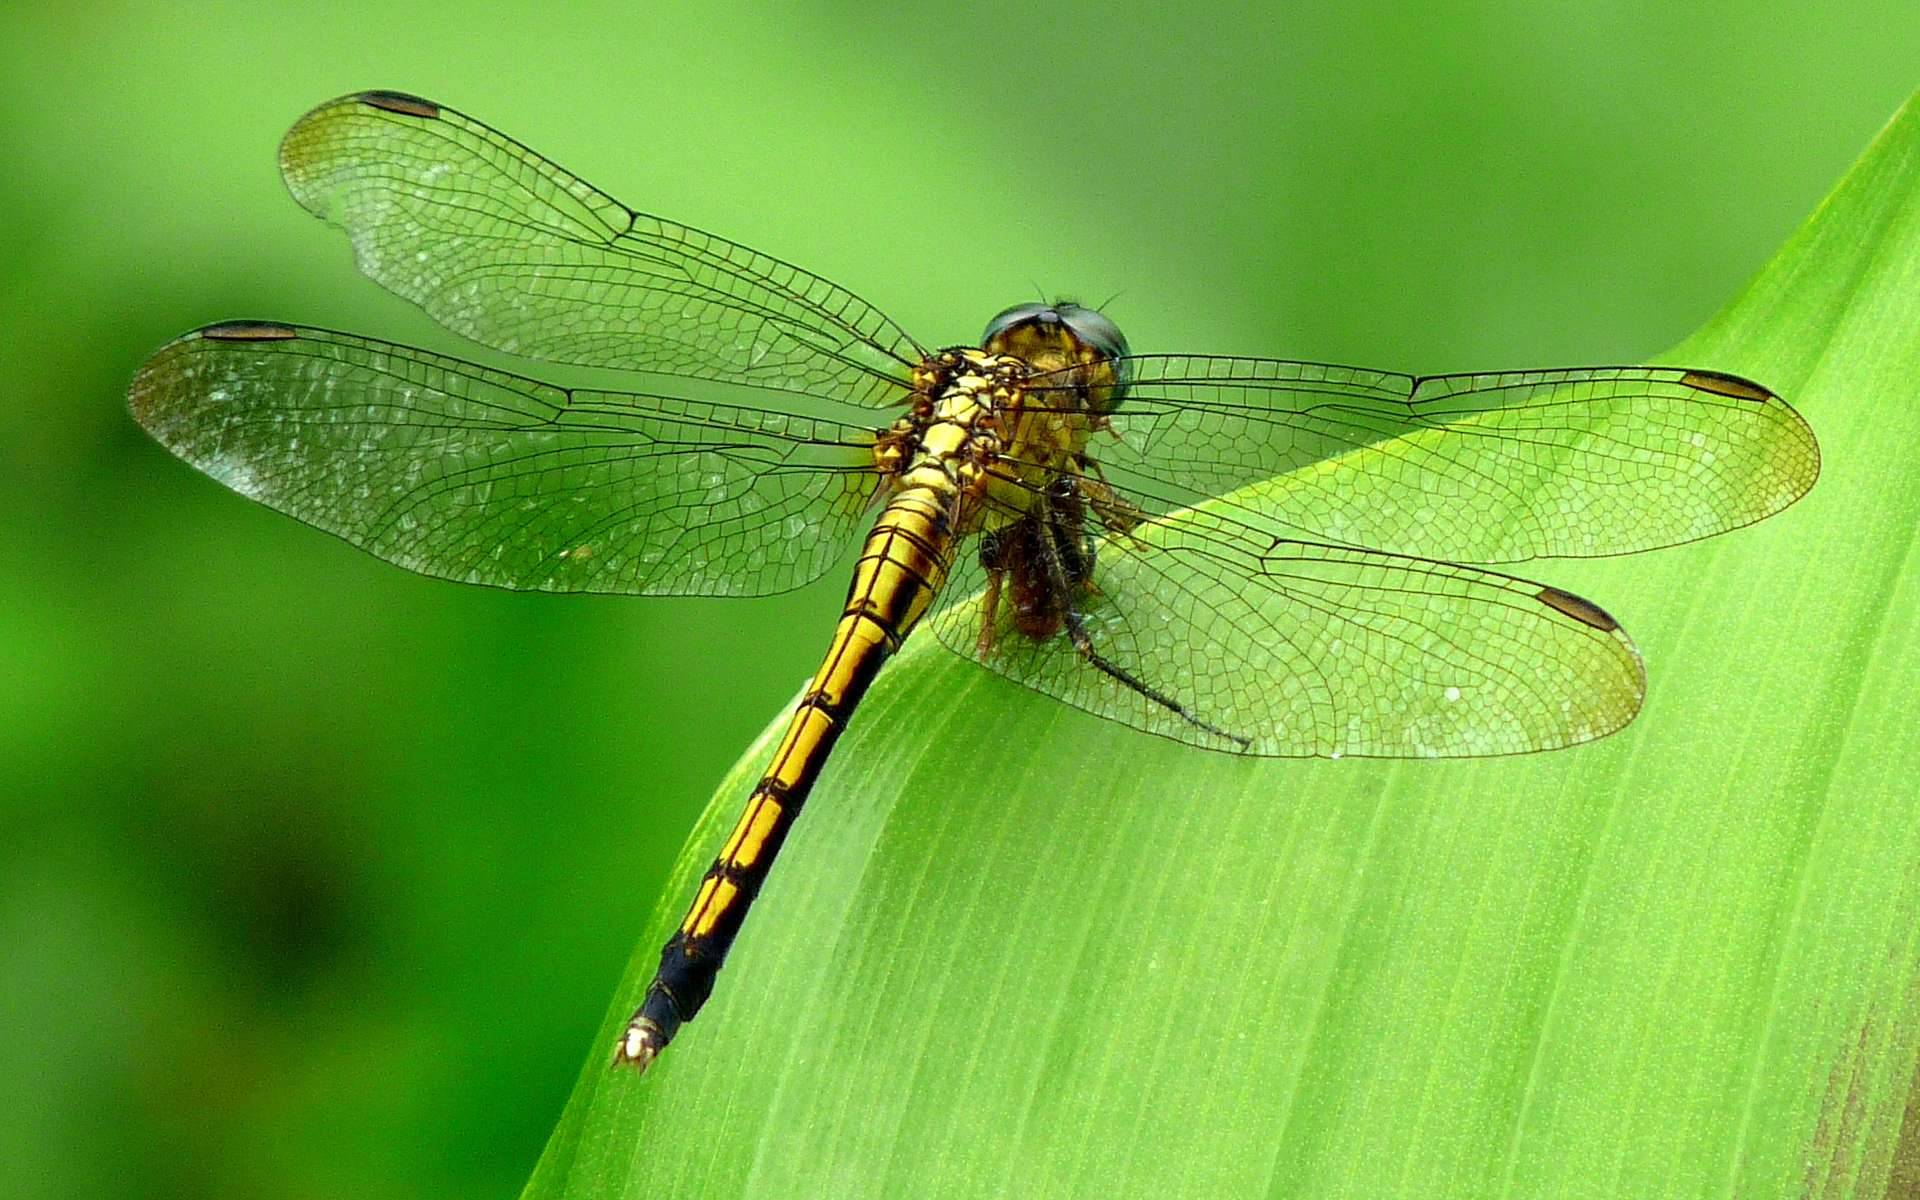 Dragonfly Images, Best Dragonfly Wallpapers in High Quality 1920x1200